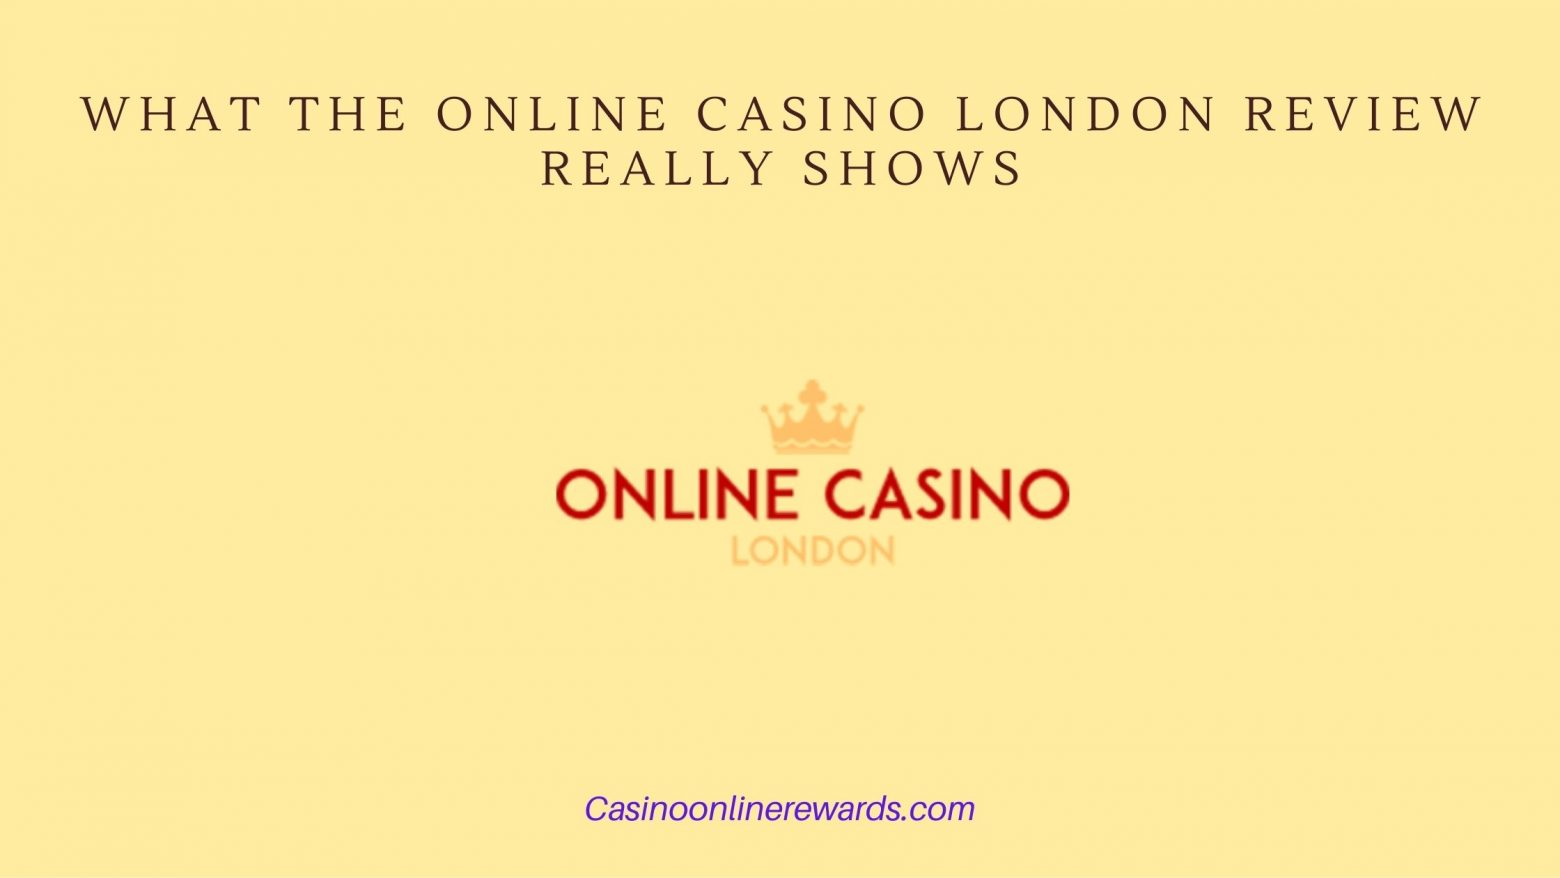 What the ONLINE CASINO LONDON review Really Shows